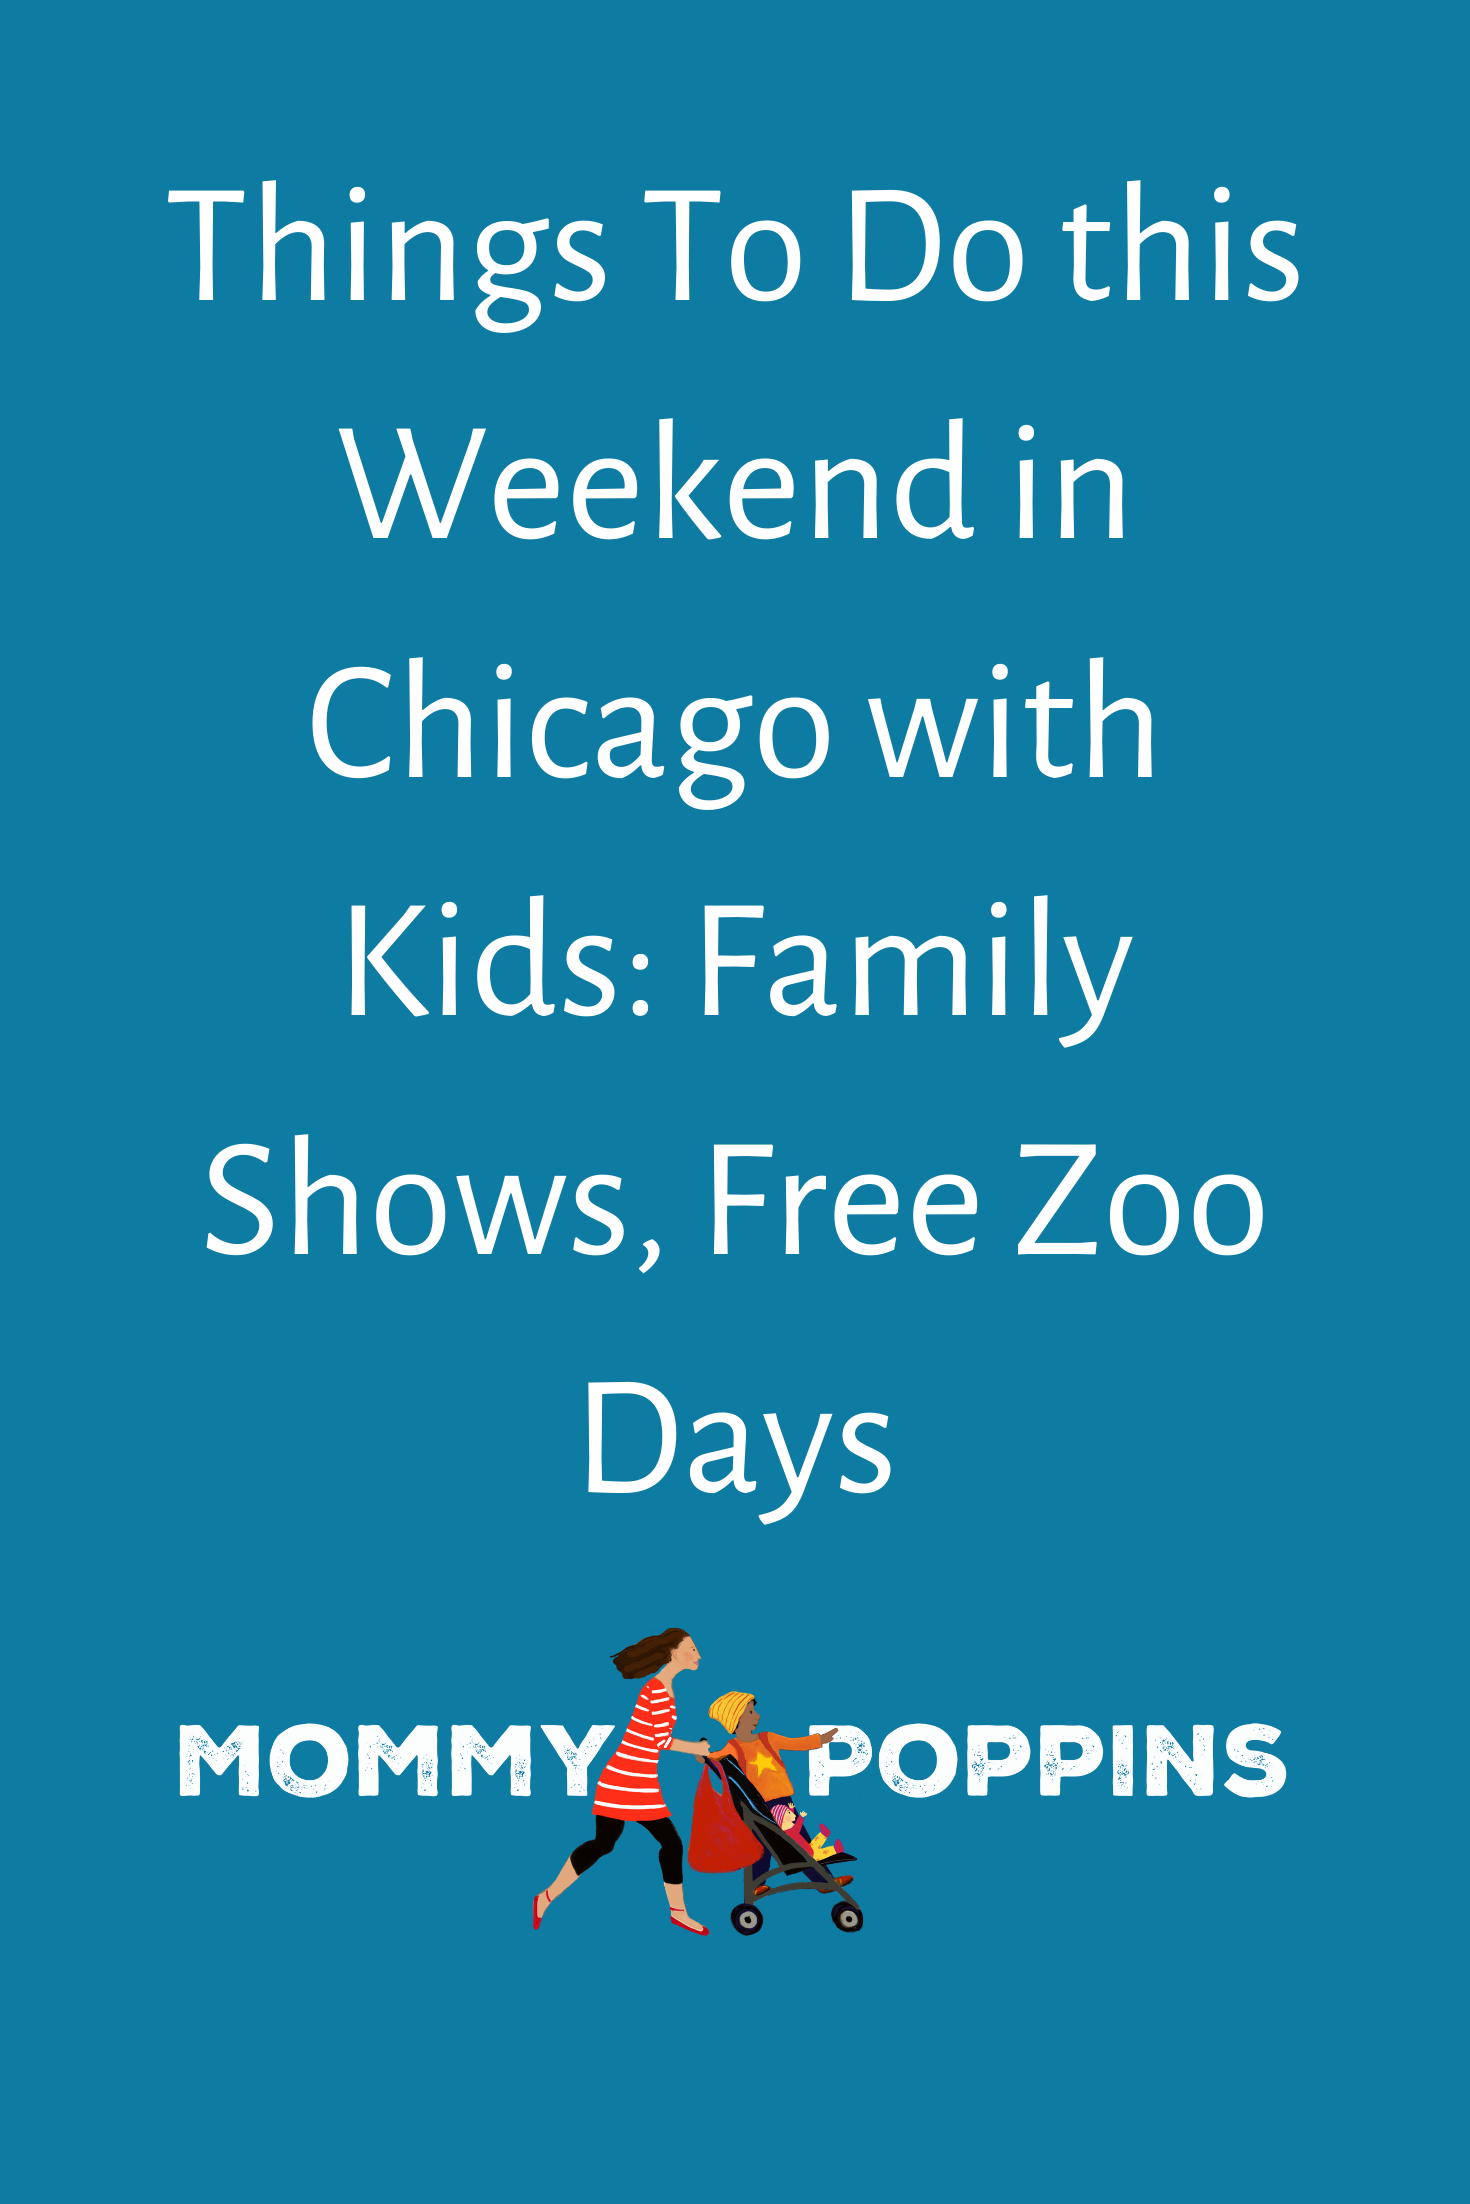 Weekend Fun for Chicago Kids Family Shows, Free Zoo Days